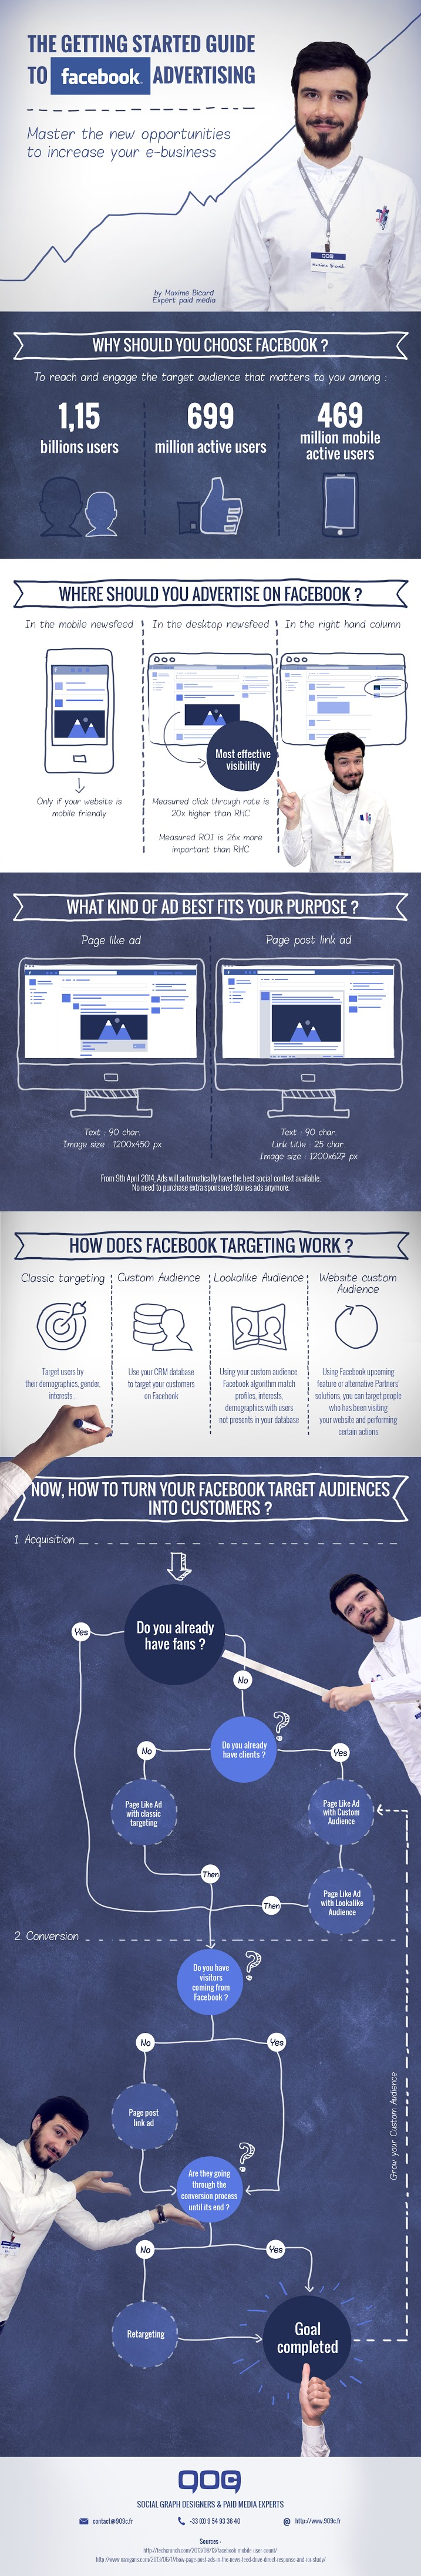 Getting started with Facebook advertising - infographic